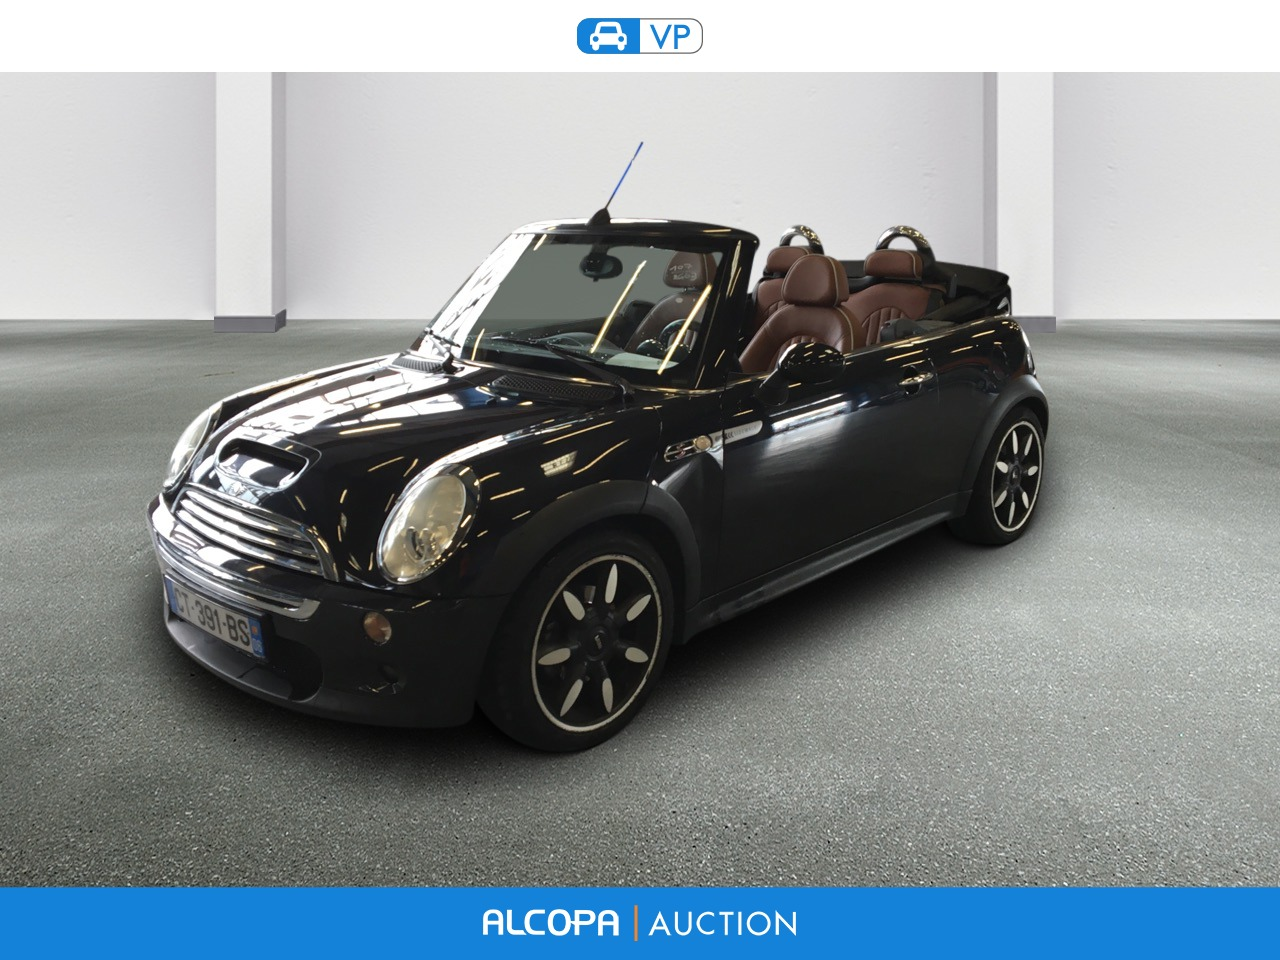 mini mini cabriolet r52 03 2007 03 2009 mini cabriolet cooper s sidewalk a alcopa auction. Black Bedroom Furniture Sets. Home Design Ideas